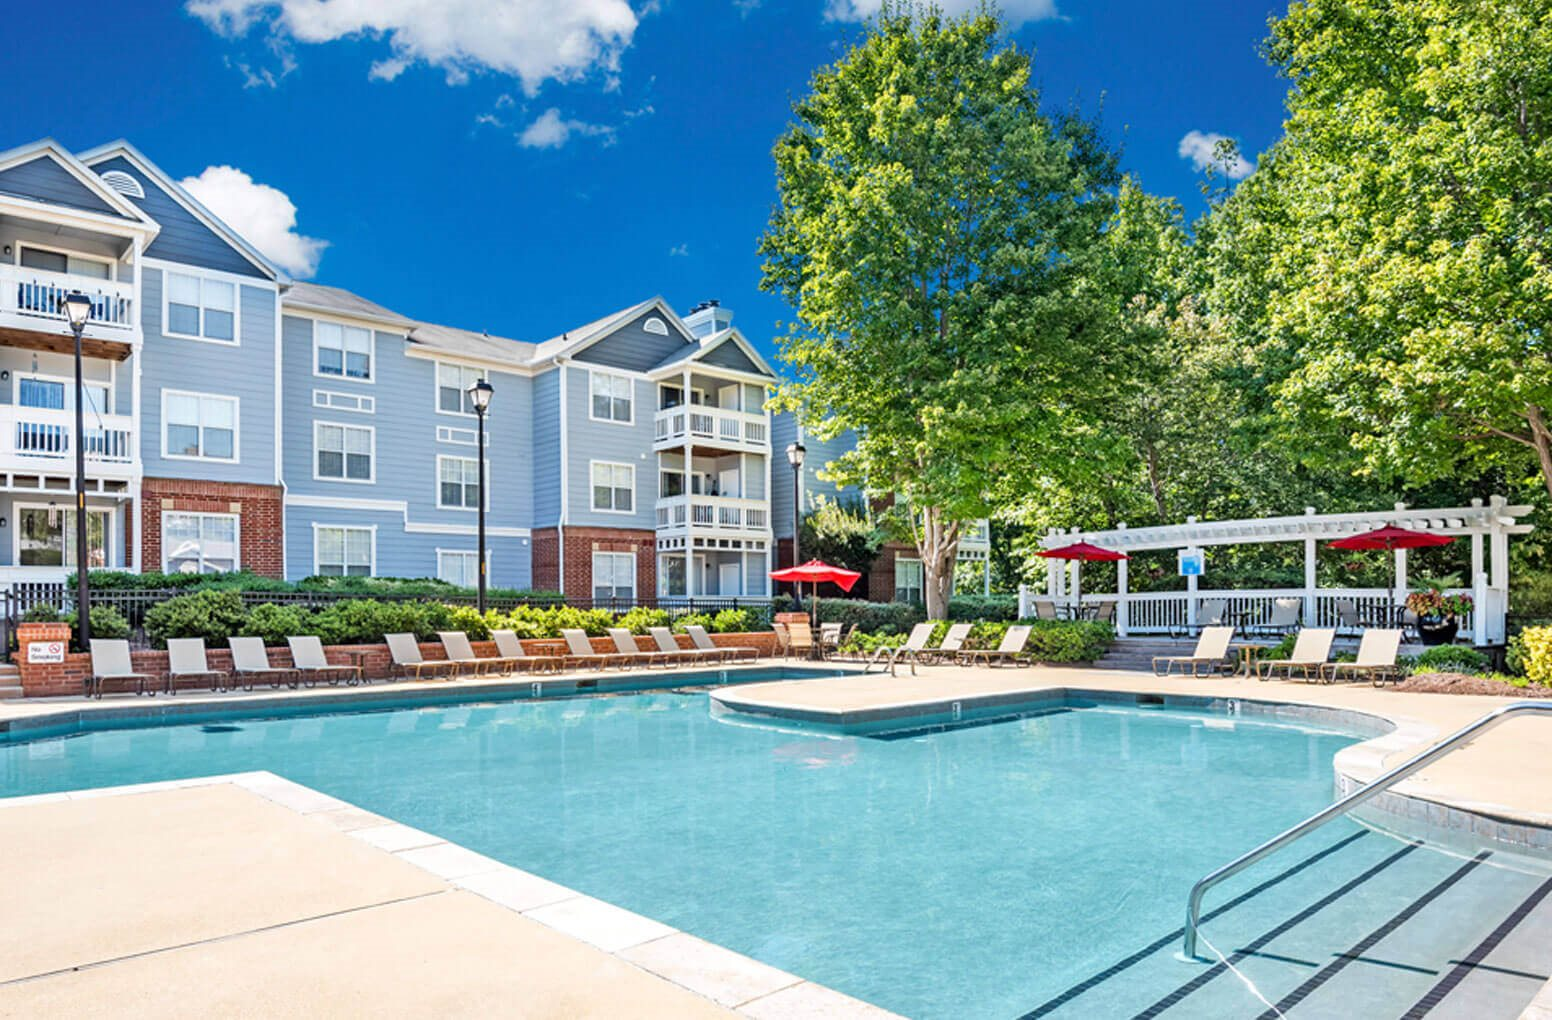 The Village Swimming Pool at The Village Apartments, Raleigh, 27615